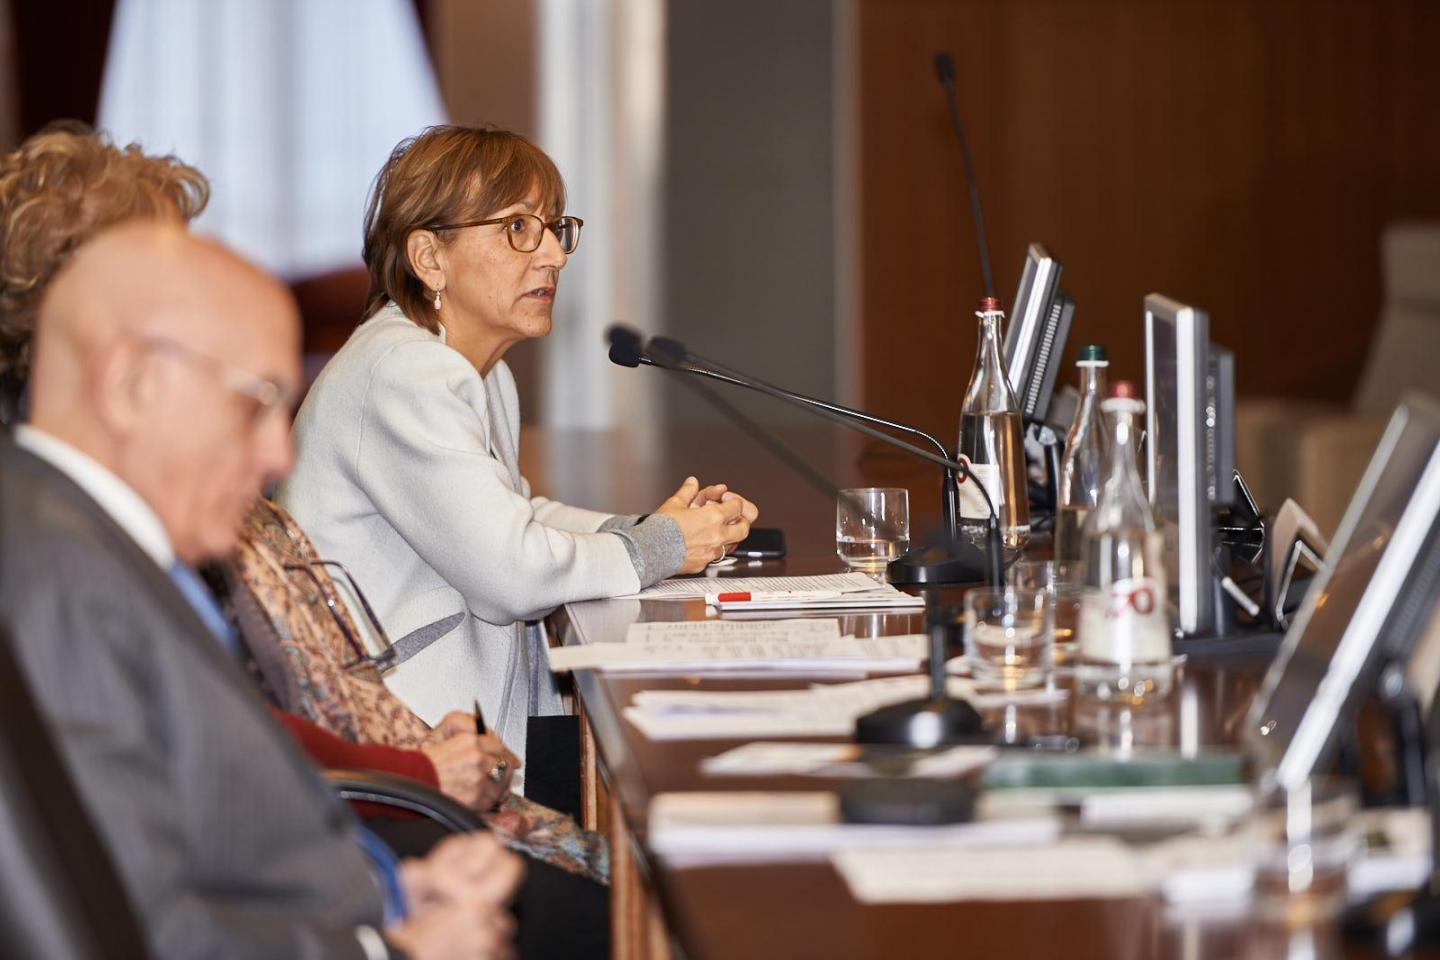 The speech of the Deputy Hon. Milena Santerini